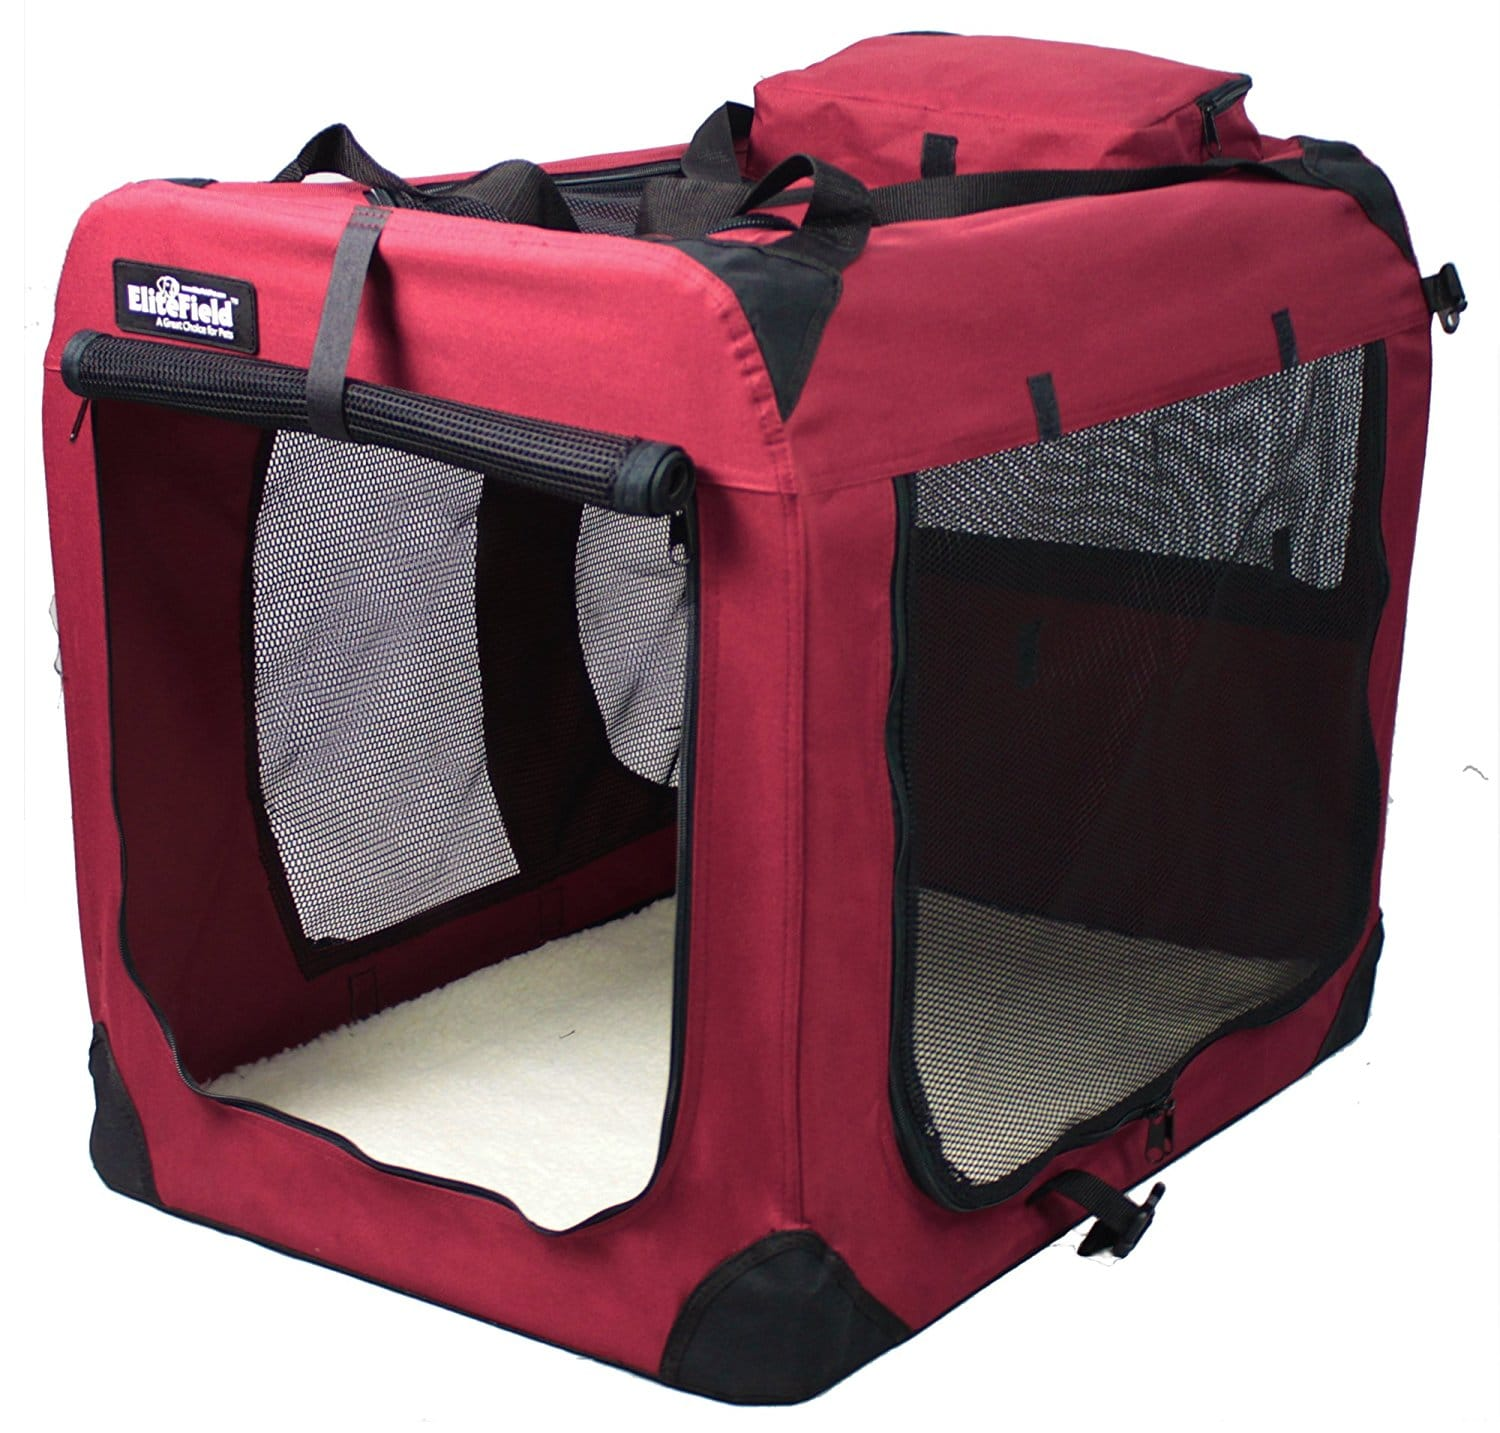 Top 10 Best Dog Crates In 2018 Topreviewproducts